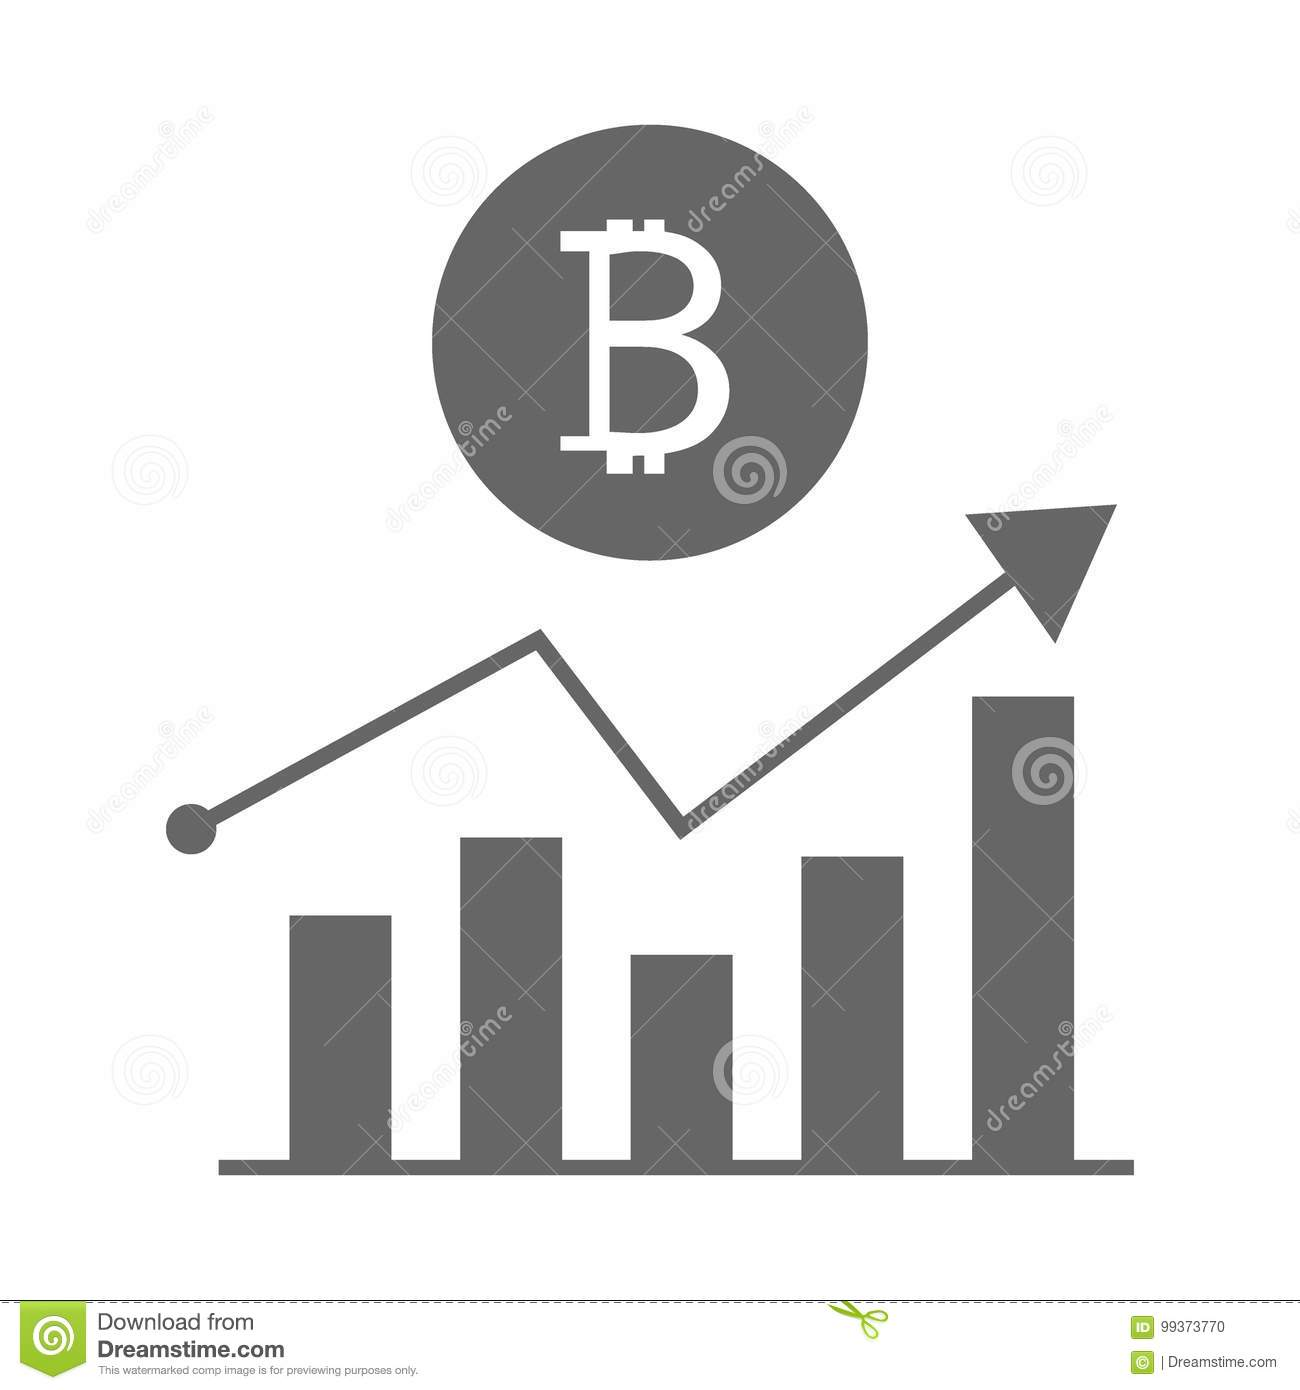 Bitcoin, the course is growing 95